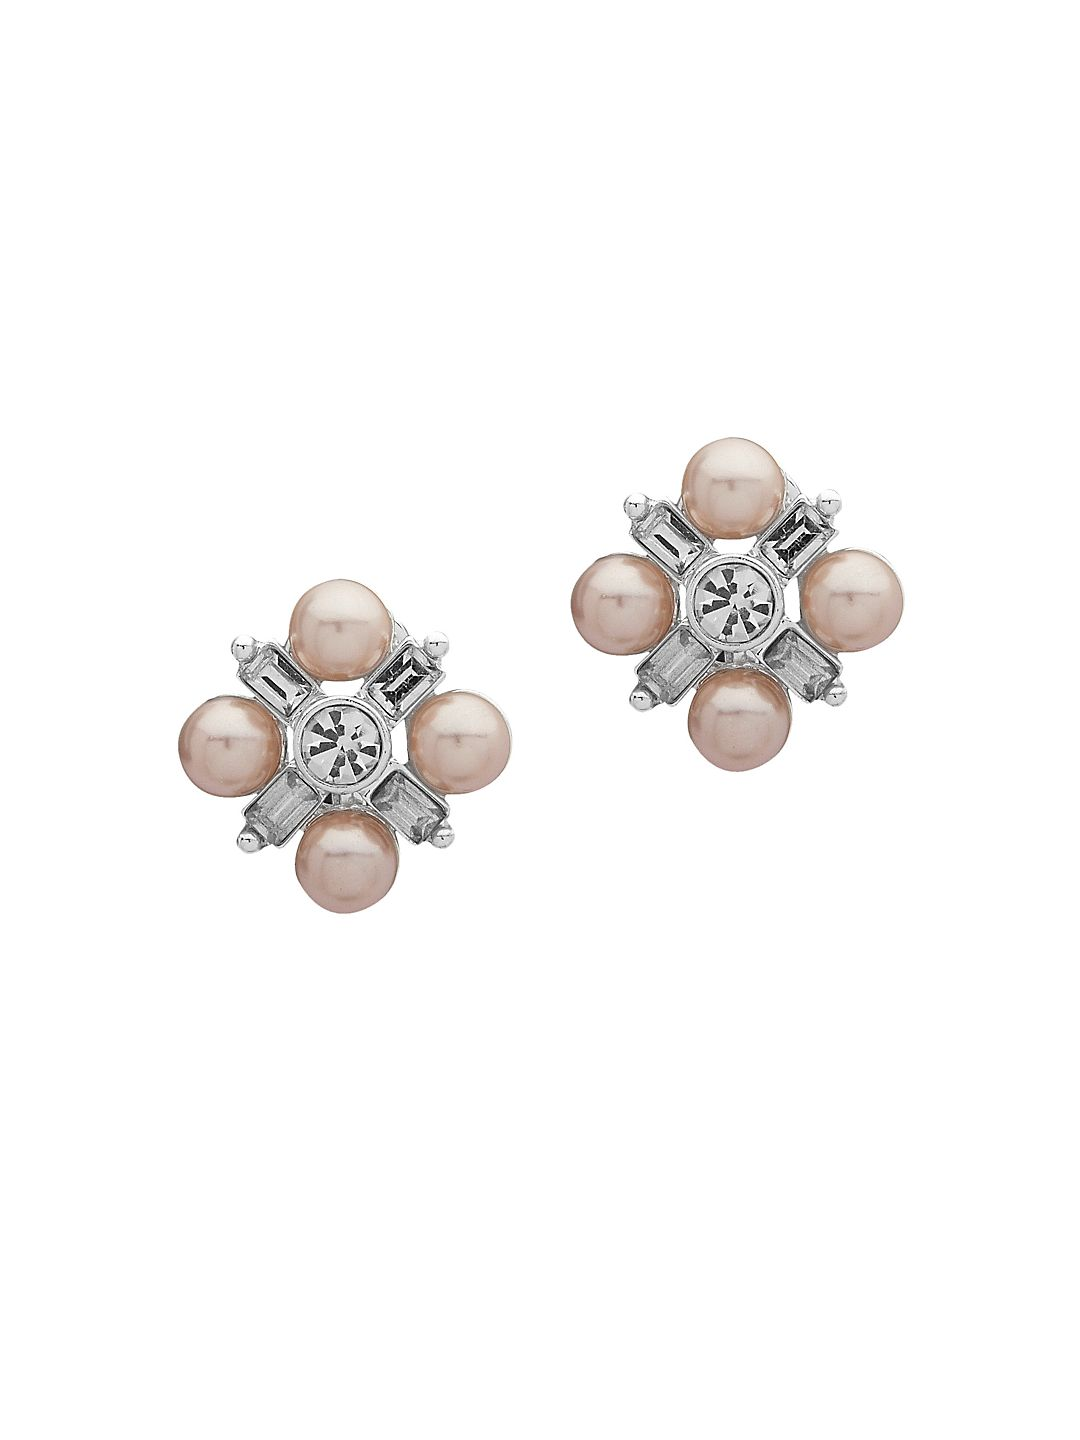 Silvertone and Faux Pearl Cluster Stud Earrings